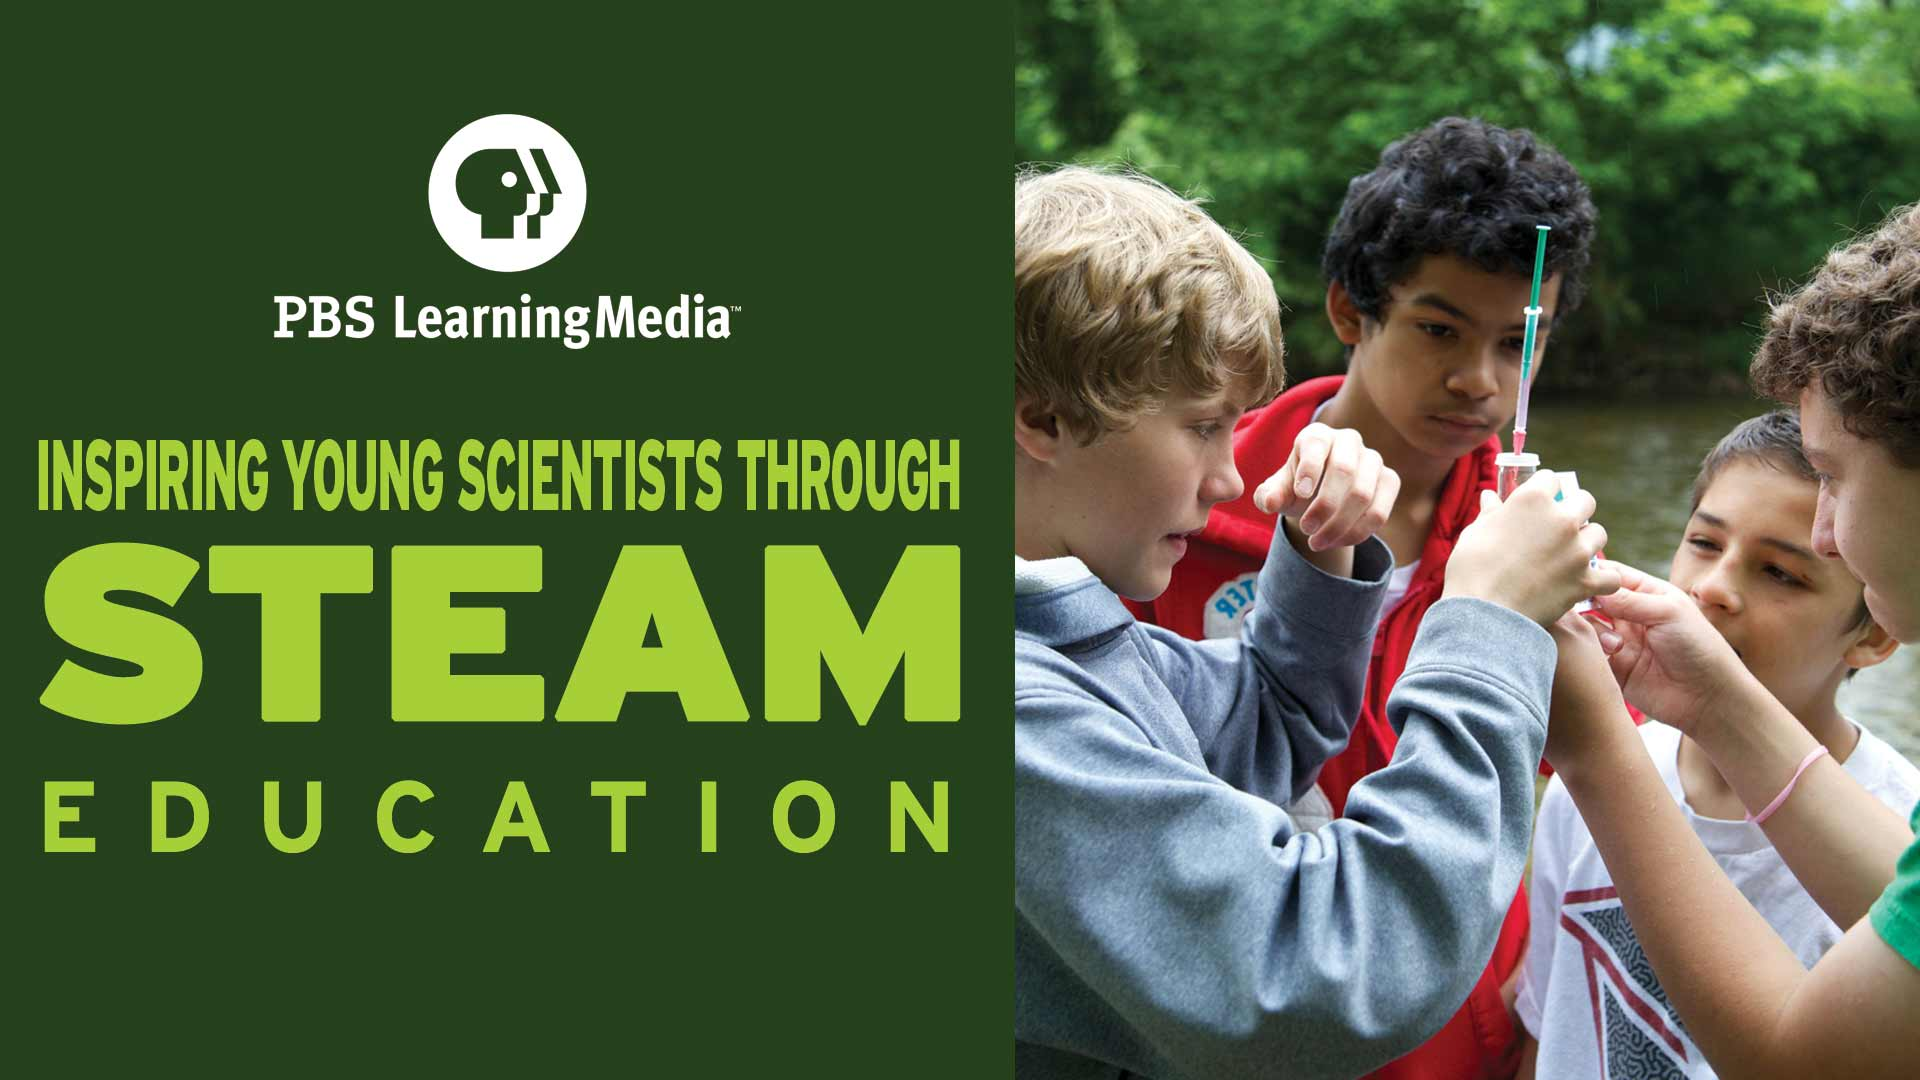 STEAM learning media hero